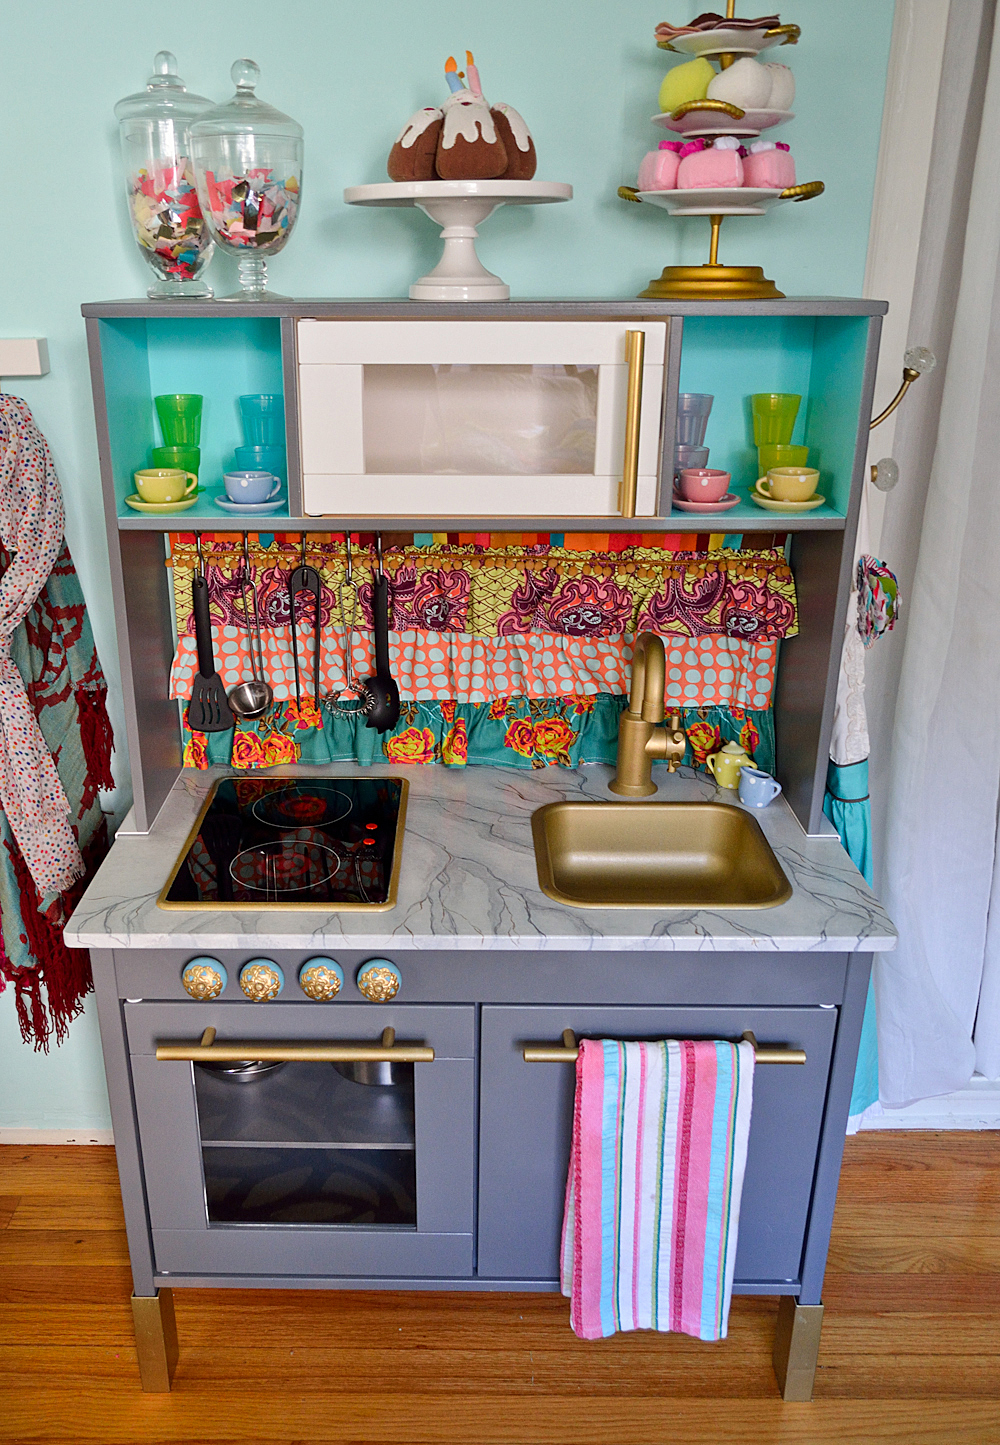 Ikea Play Kitchen Hack  Color Transformed Family. Ideas For Kitchen Cabinet Colors. 3d Kitchen Cabinet Design Software. Kitchen Cabinets Honolulu. Ebay Kitchen Cabinet Hardware. Lidingo Kitchen Cabinets. Wooden Kitchen Cabinets Designs. Brown And White Kitchen Cabinets. Shaker Cherry Kitchen Cabinets